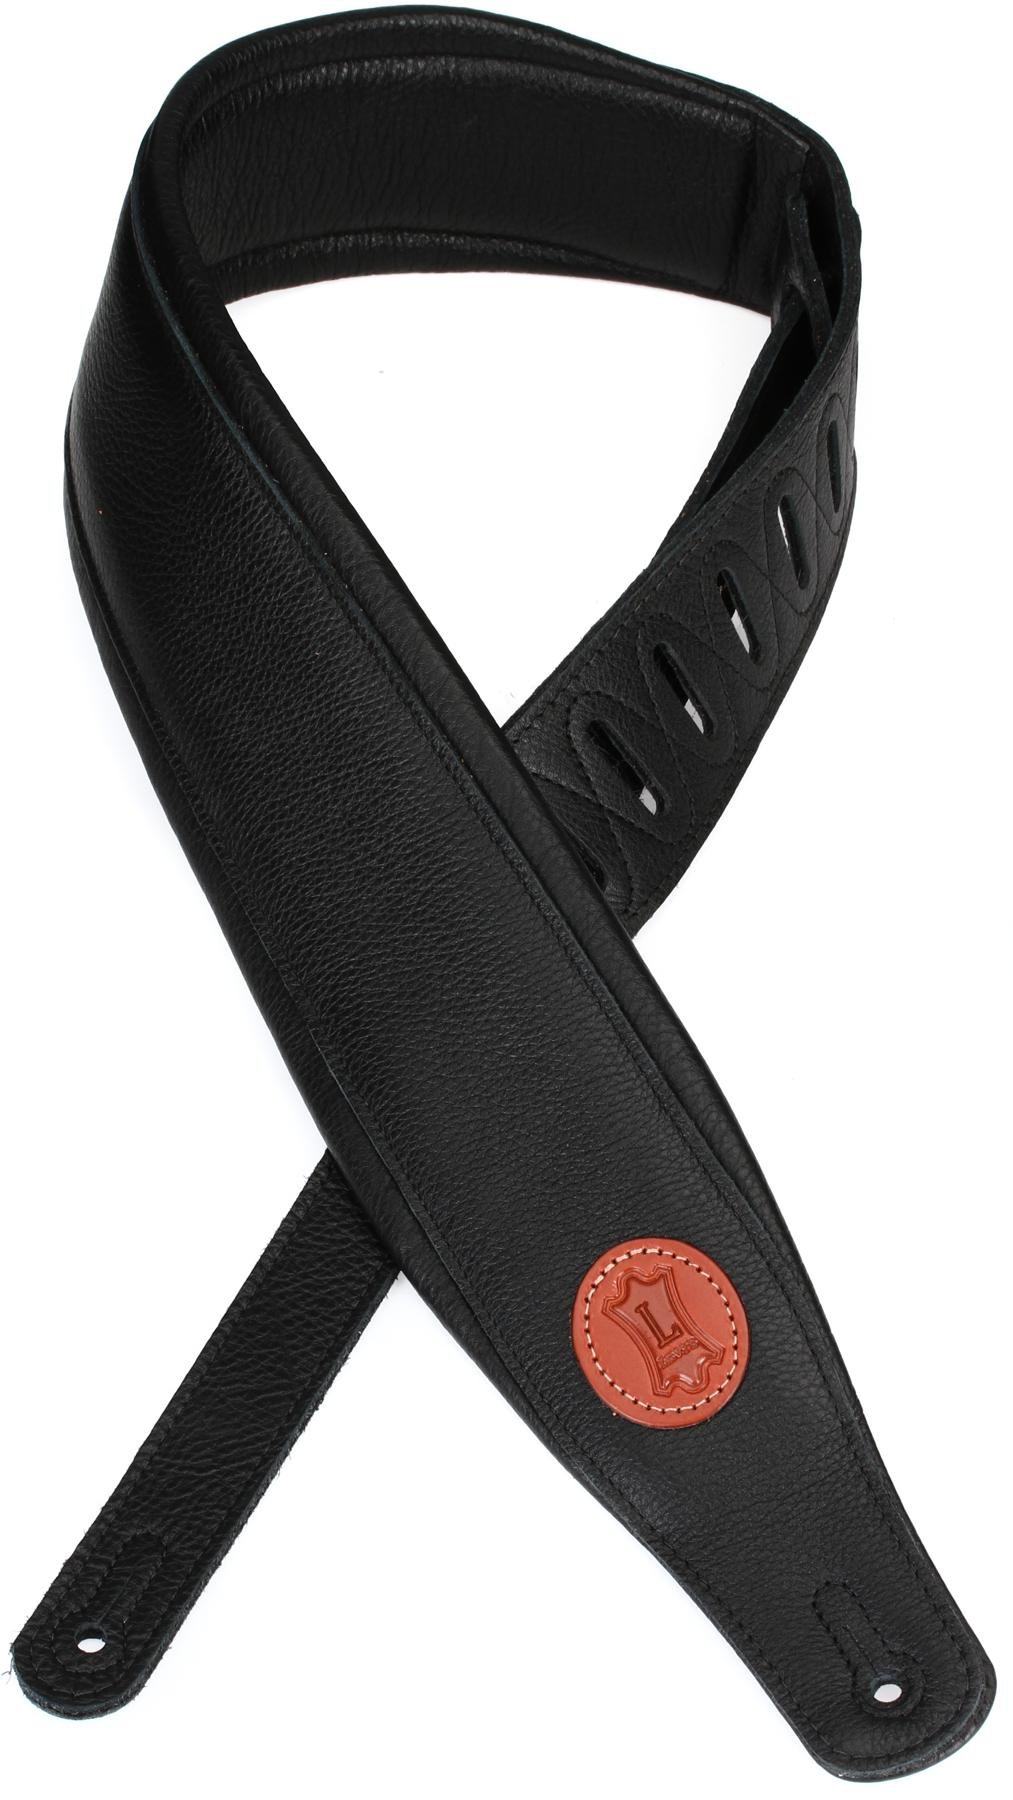 Levys Leathers Mss2-4-wht 4 Garment Leather Signature Series Guitar Strap White